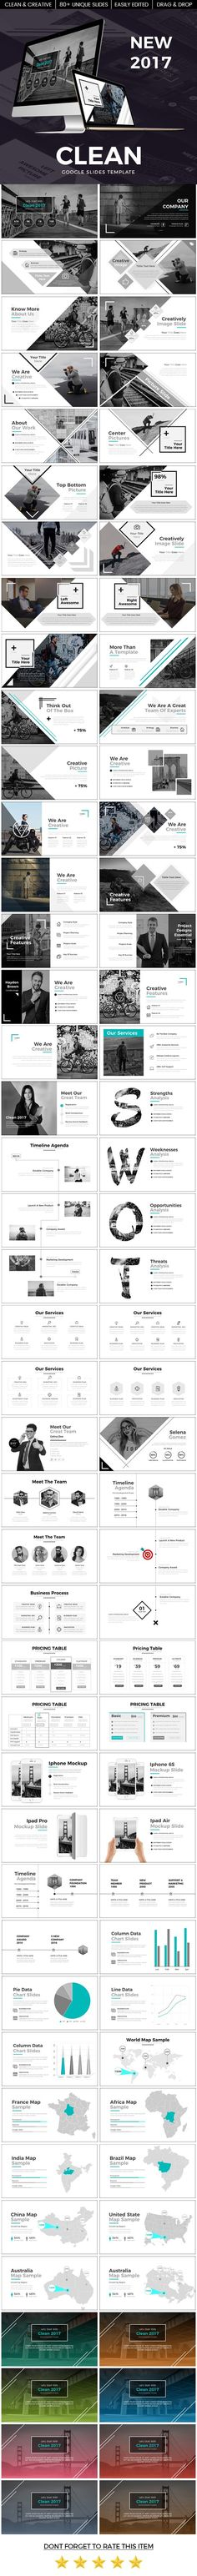 Clean 2017 Google Slide Template - Google Slides #Presentation #Templates Download here: https://graphicriver.net/item/clean-2017-google-slide-template/19742859?ref=alena994: